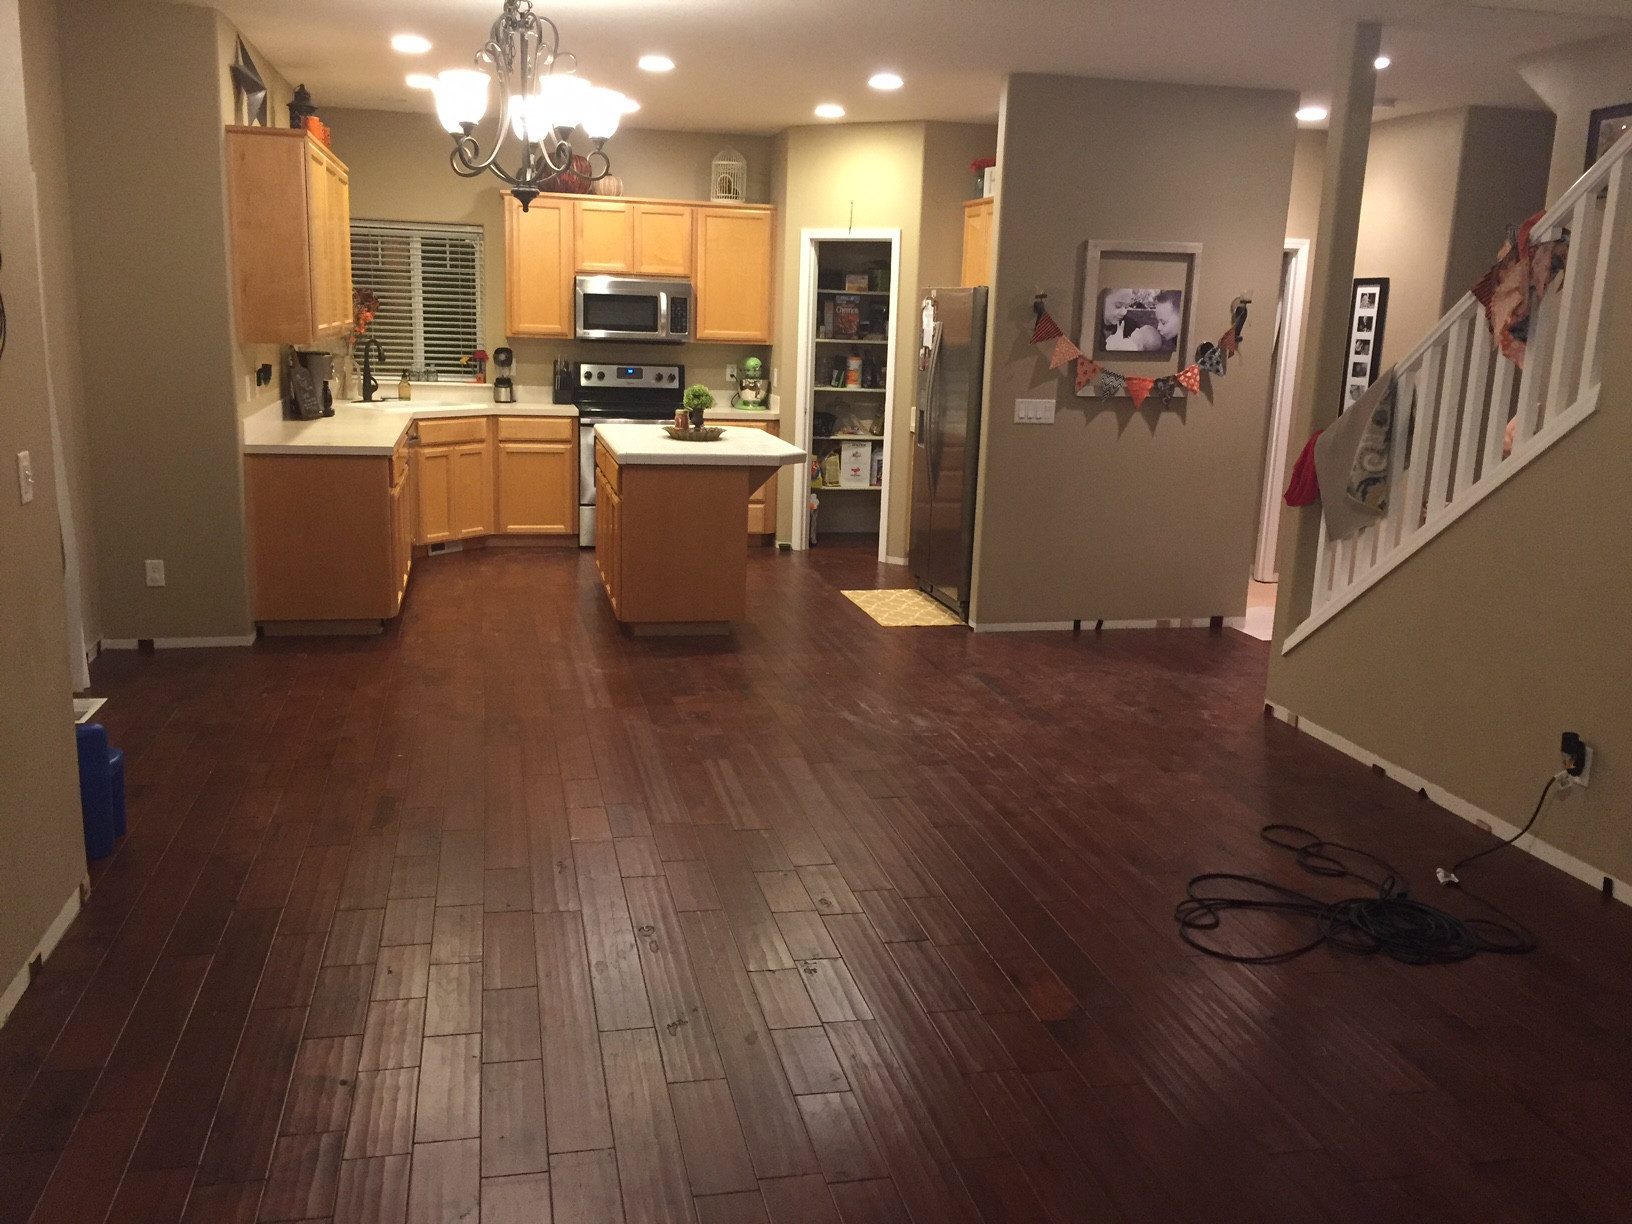 best hardwood floor for concrete slab of how to fix laminate flooring that is buckling repairing a wood floor regarding how to fix laminate flooring that is buckling how can i secure fasten a half installed